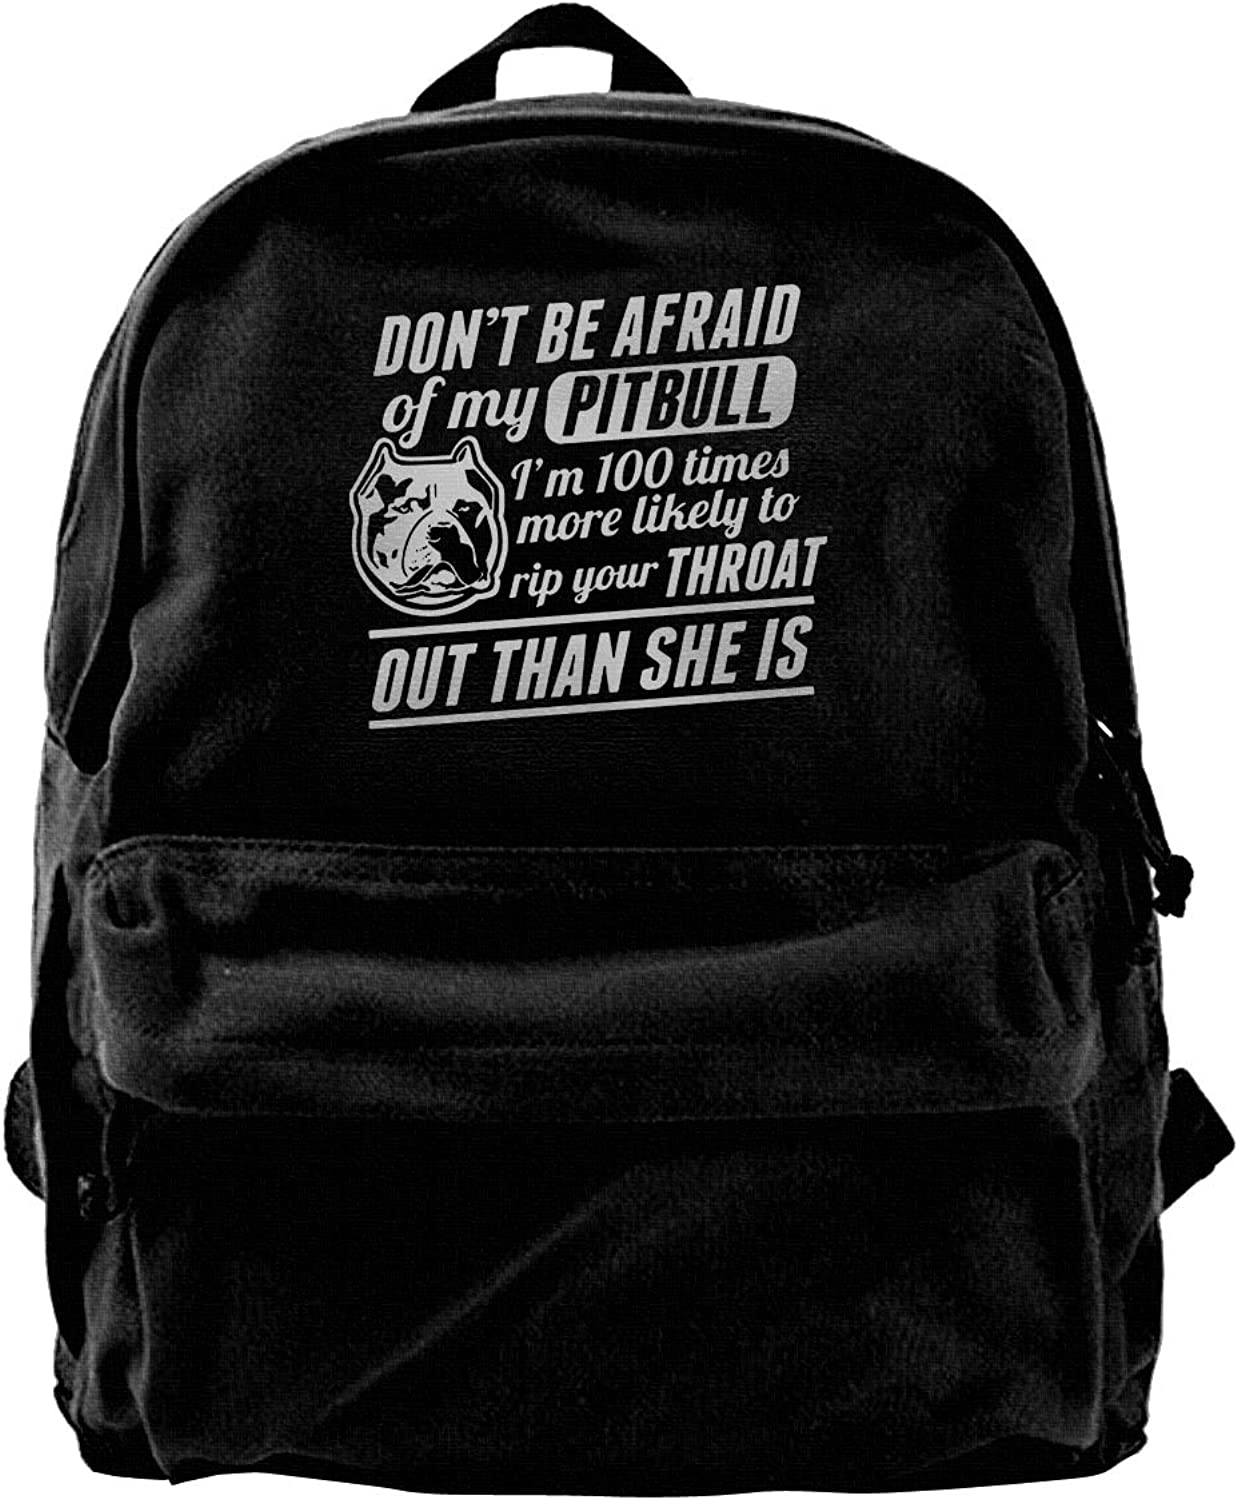 Don't Be Afraid of My Pitbull Fashion Lightweight Canvas Travel Backpack for Women & Men